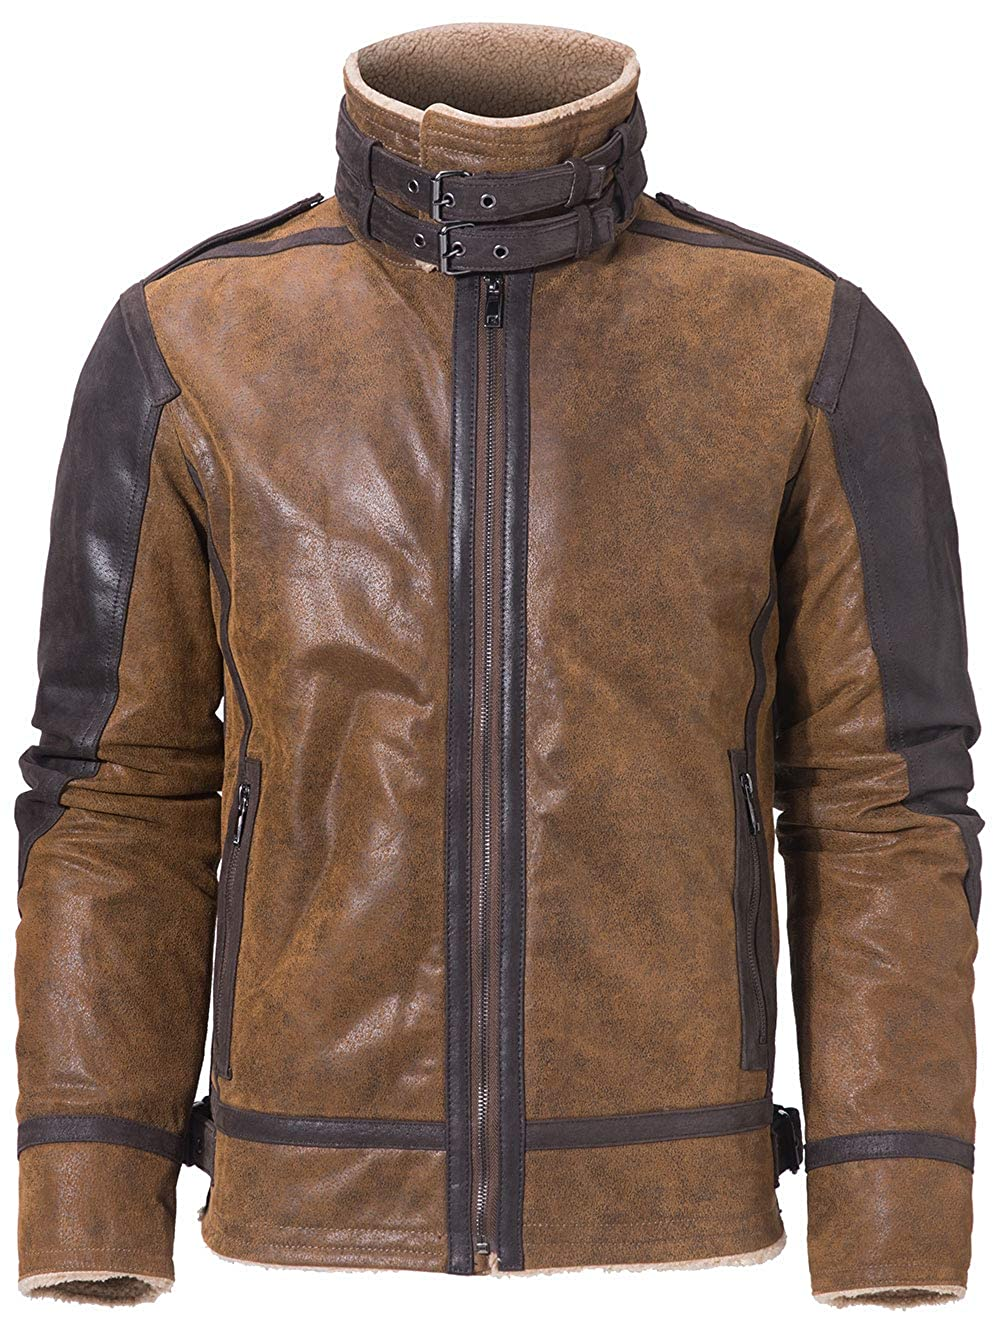 FLAVOR Men's Leather Bomber Jacket with Faux Fur Shearling Fleece Pilot Coat